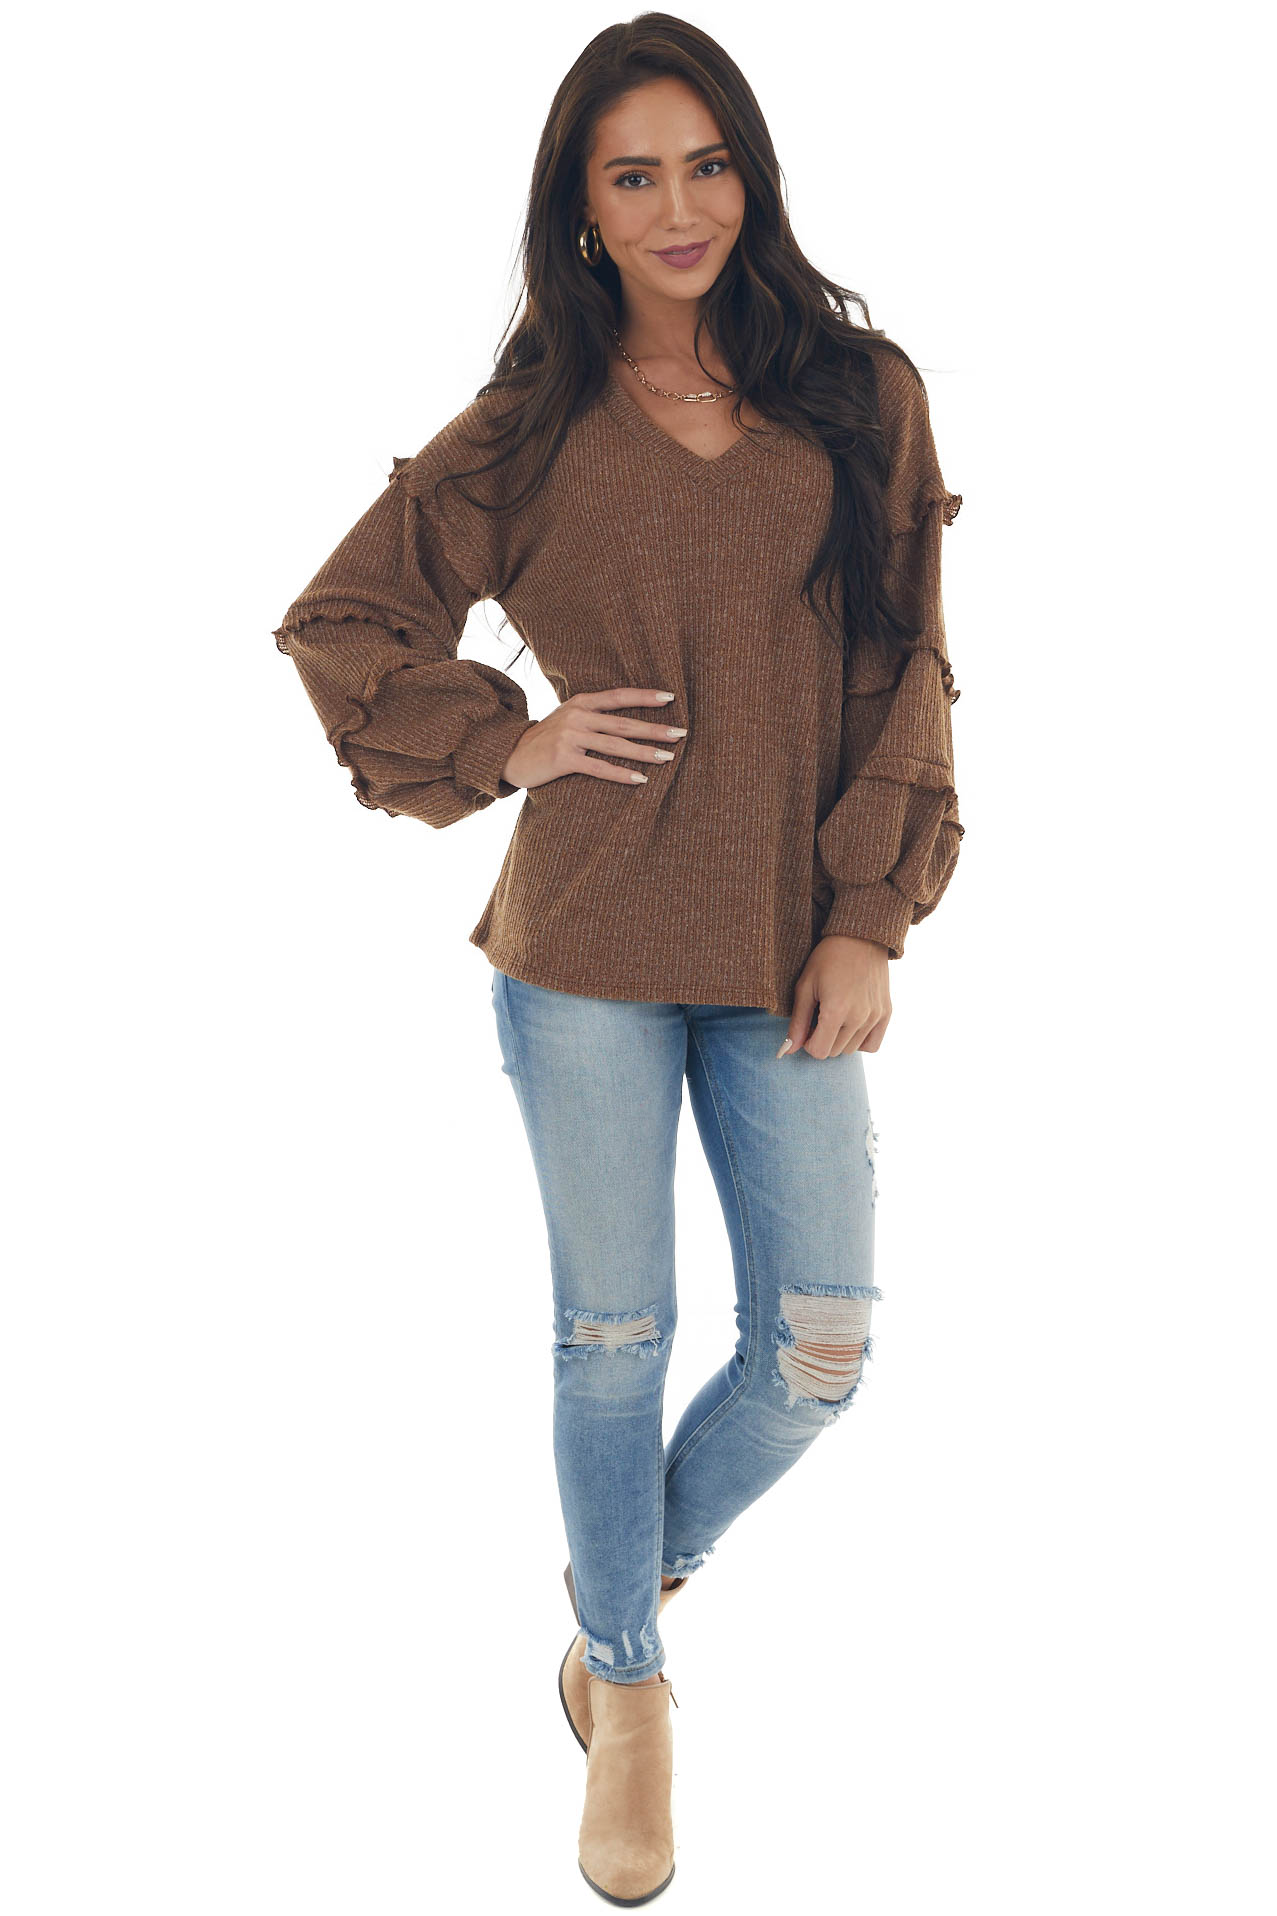 Sepia Ribbed Knit Top with Ruffle Puff Sleeves